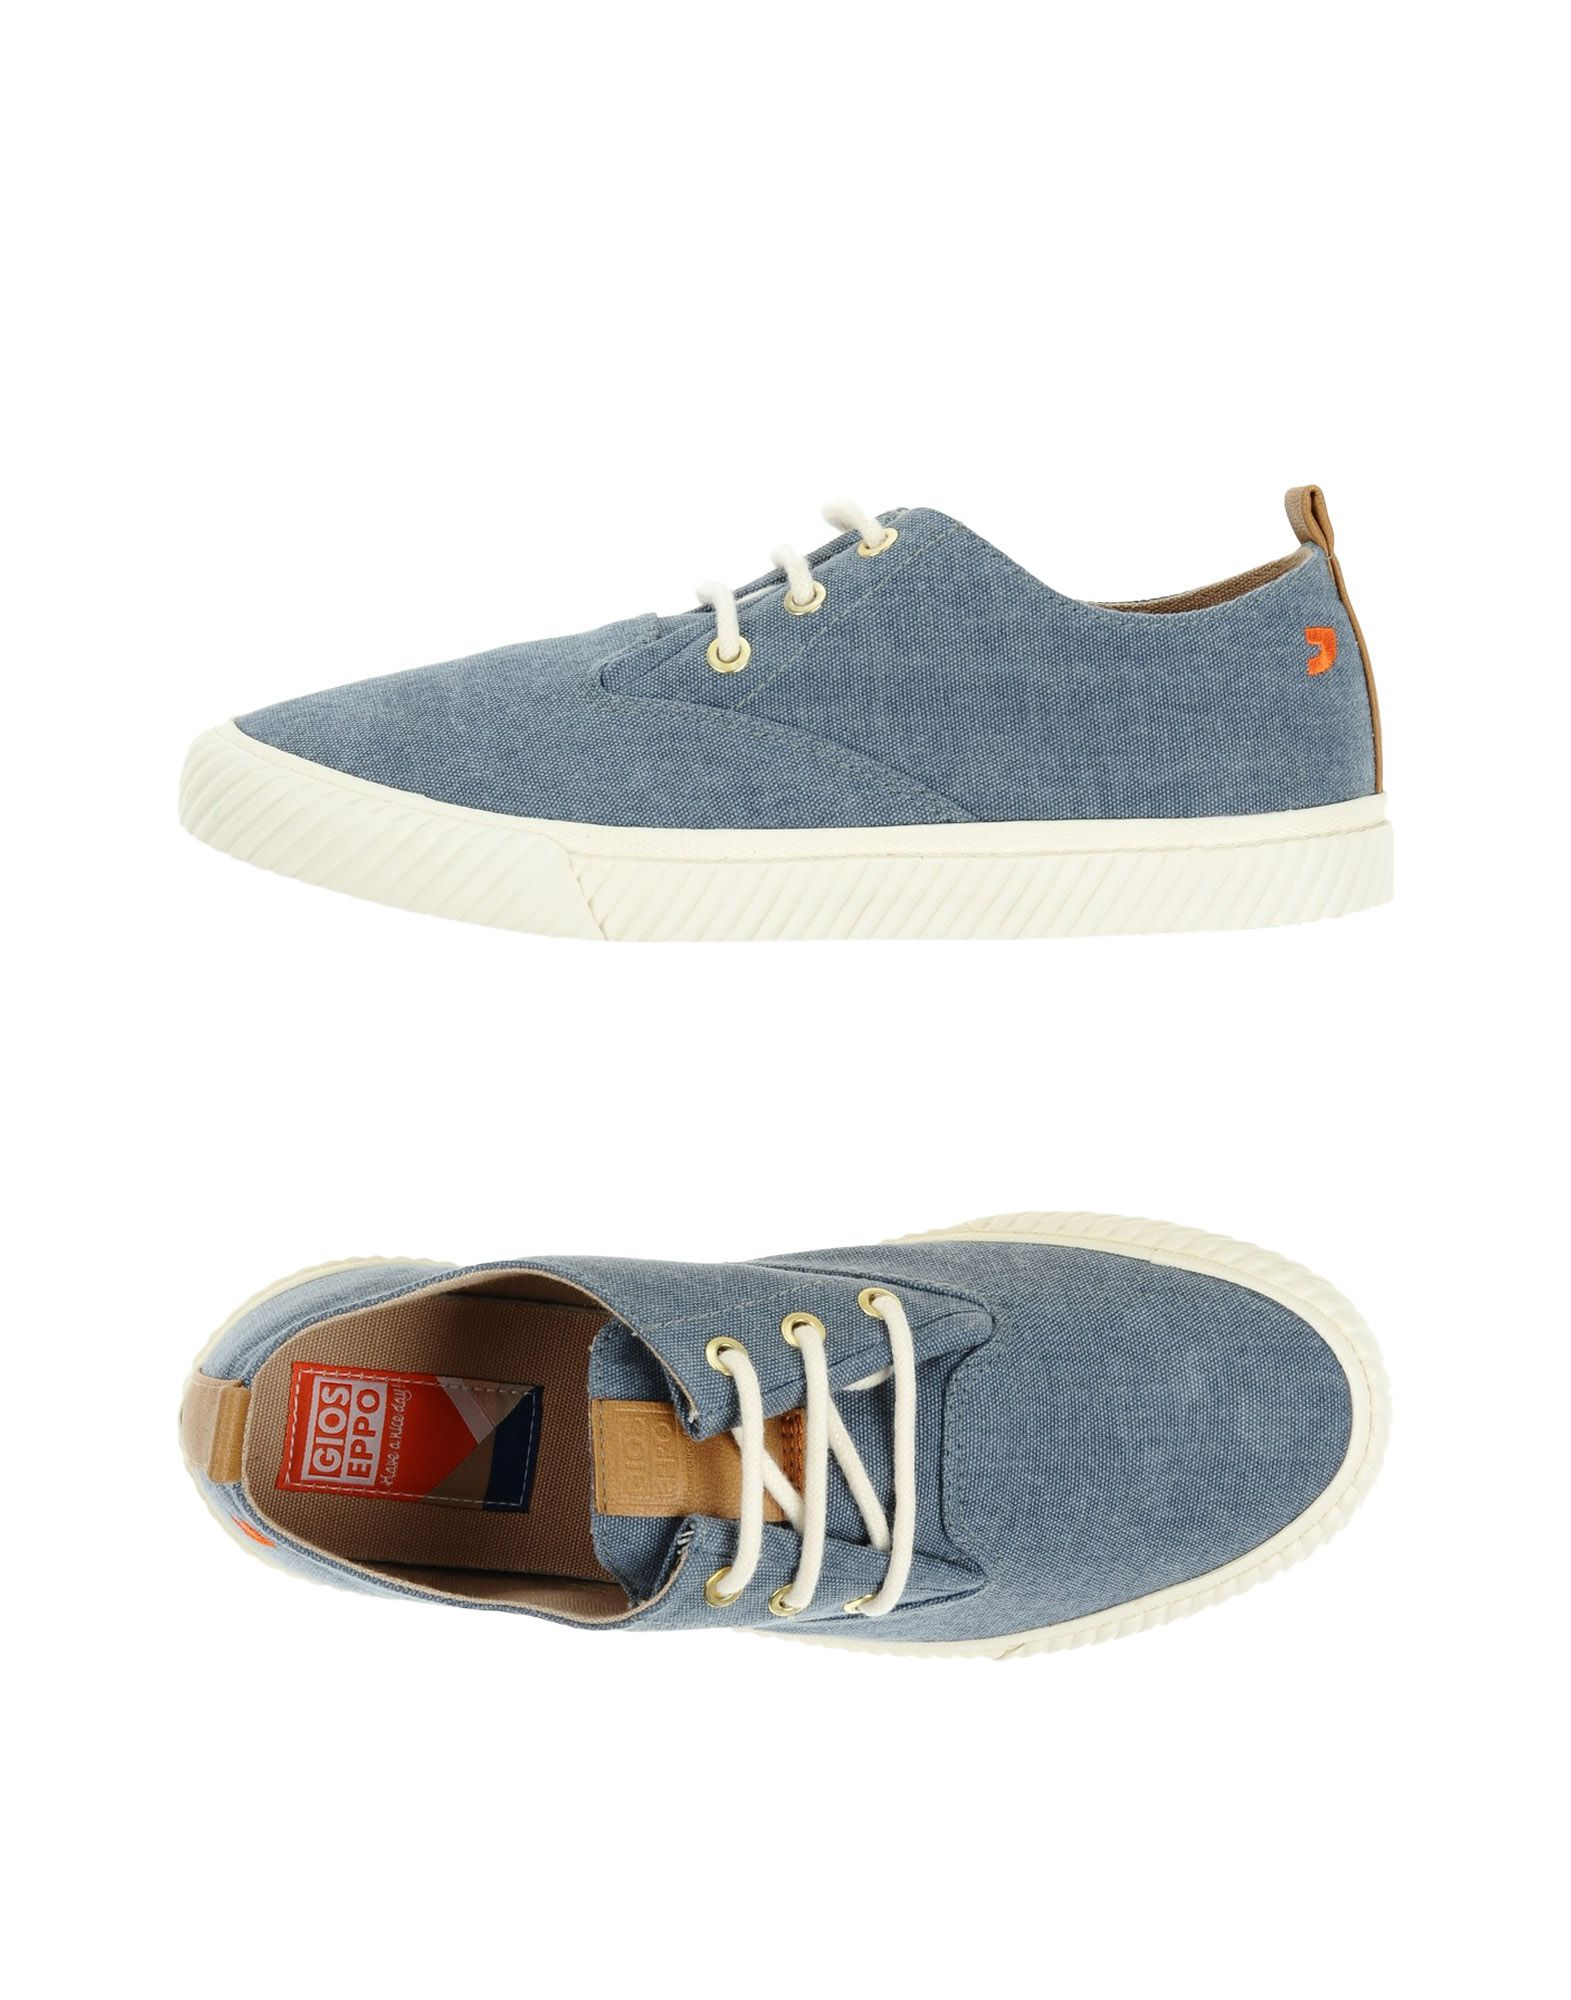 Sneakers Gioseppo Homme - Sneakers Gioseppo  Bleu pétrole Chaussures femme pas cher homme et femme